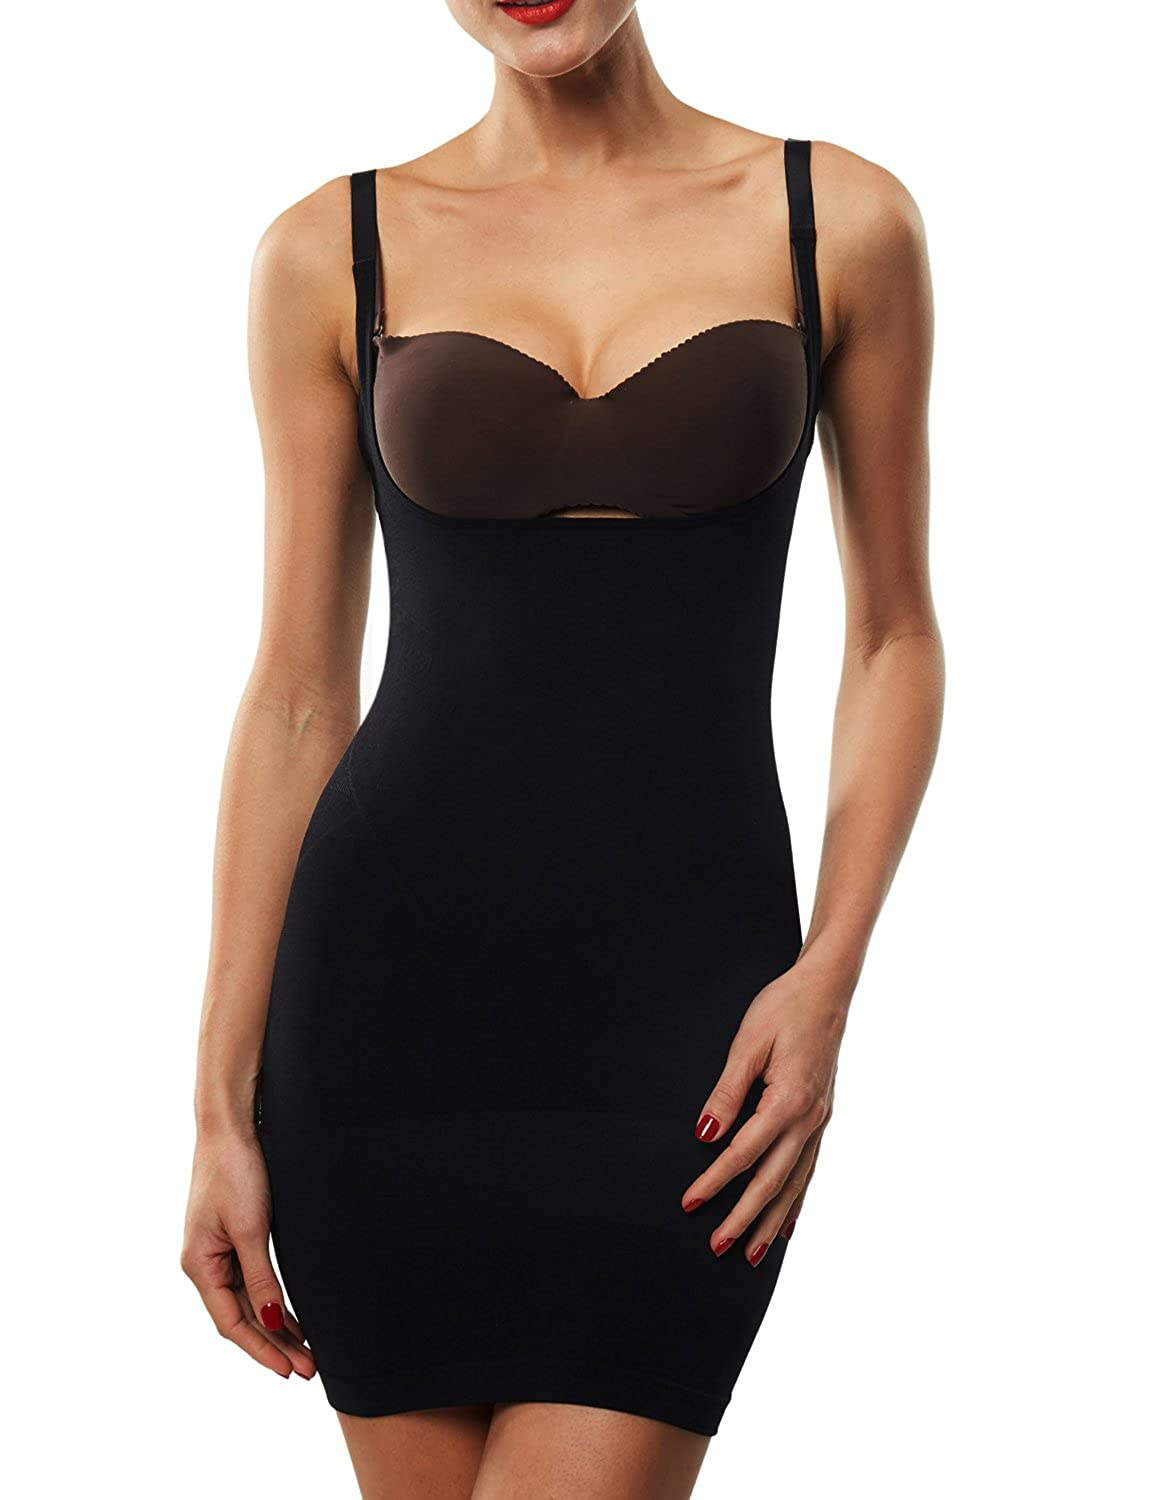 Franato Women's Shapewear Dress Control Slip Full Body Shaper Open Bust